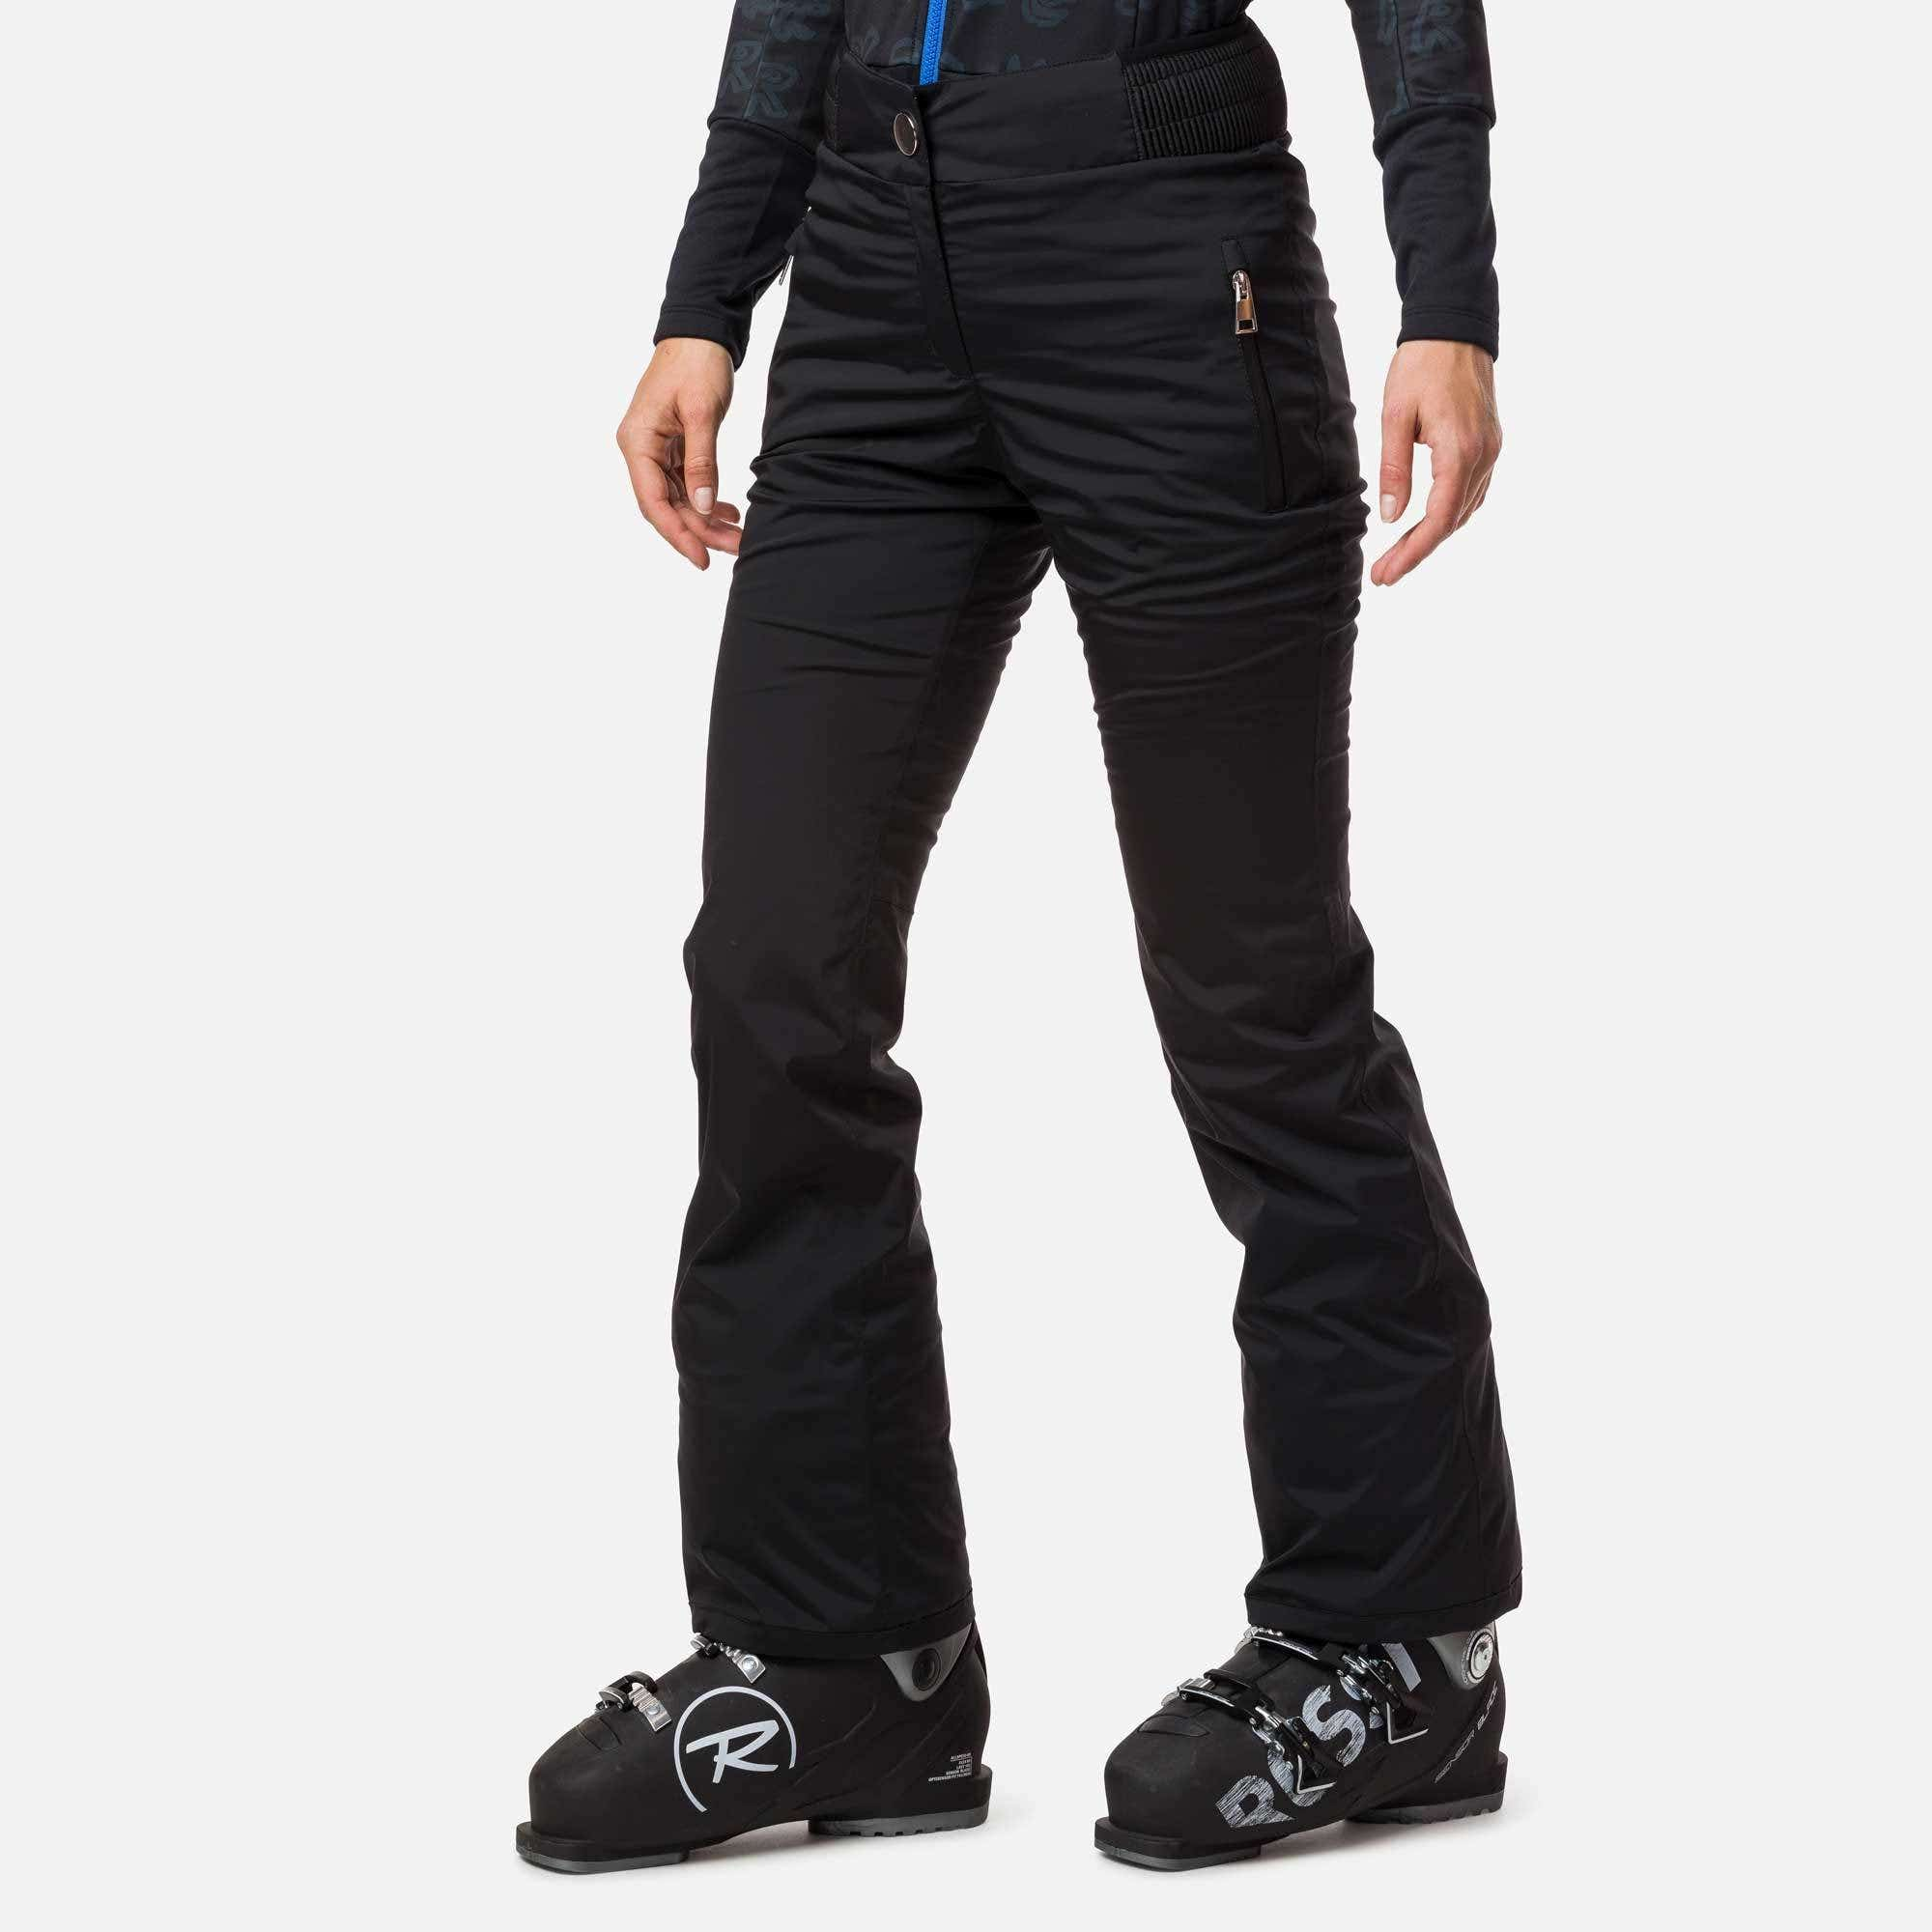 Image of JCC Women's Nutti Global Ski Pants